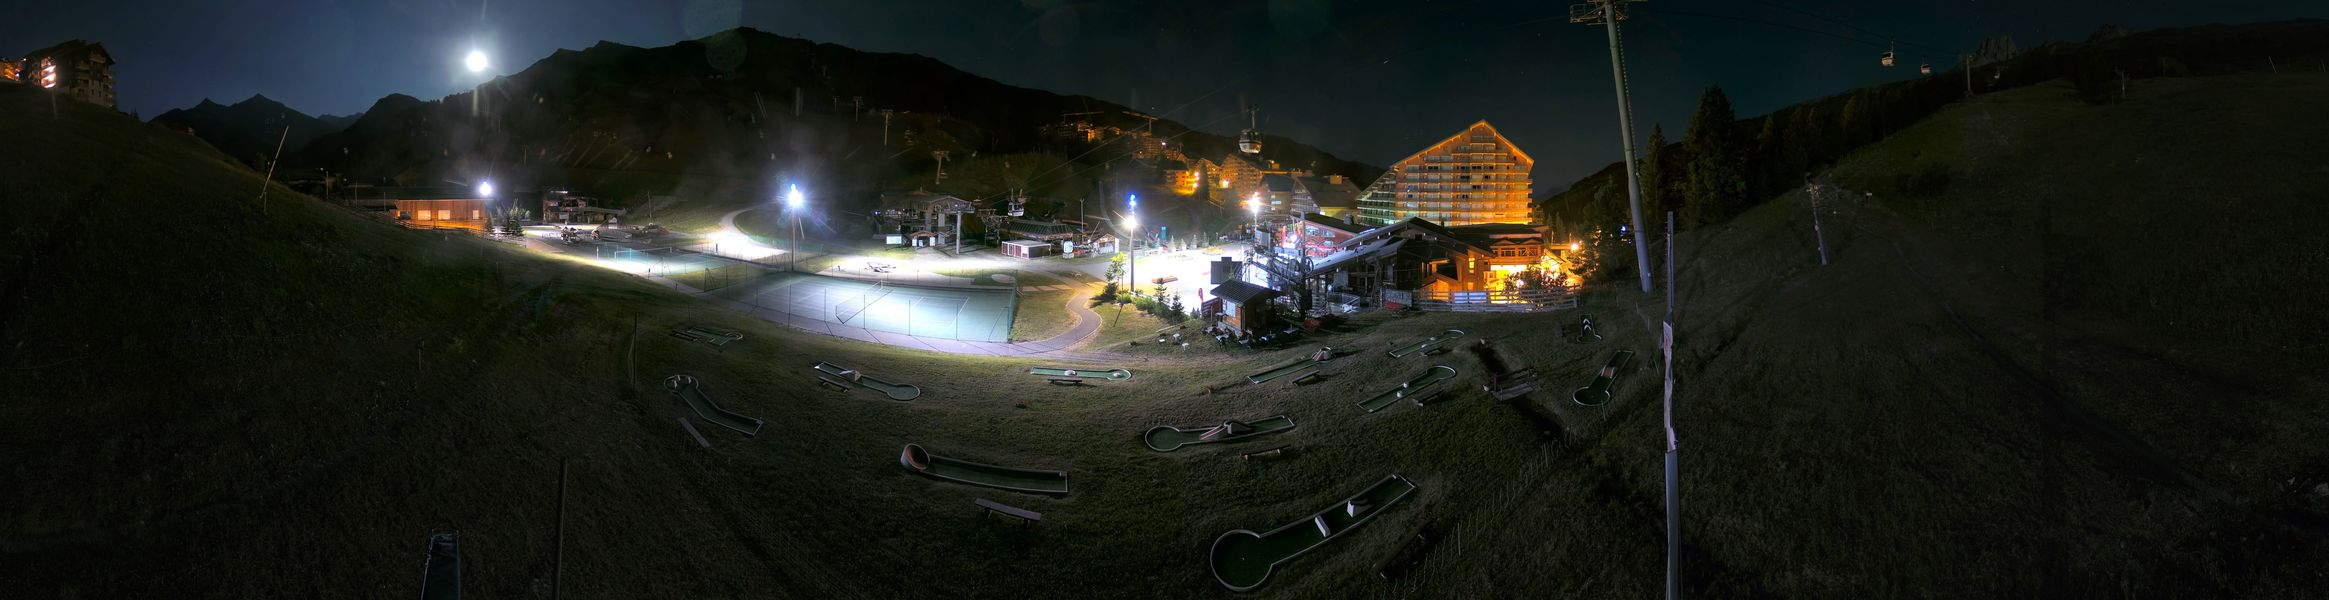 Webcam - Meribel Mottaret - Le Front De Neige - 1750 m